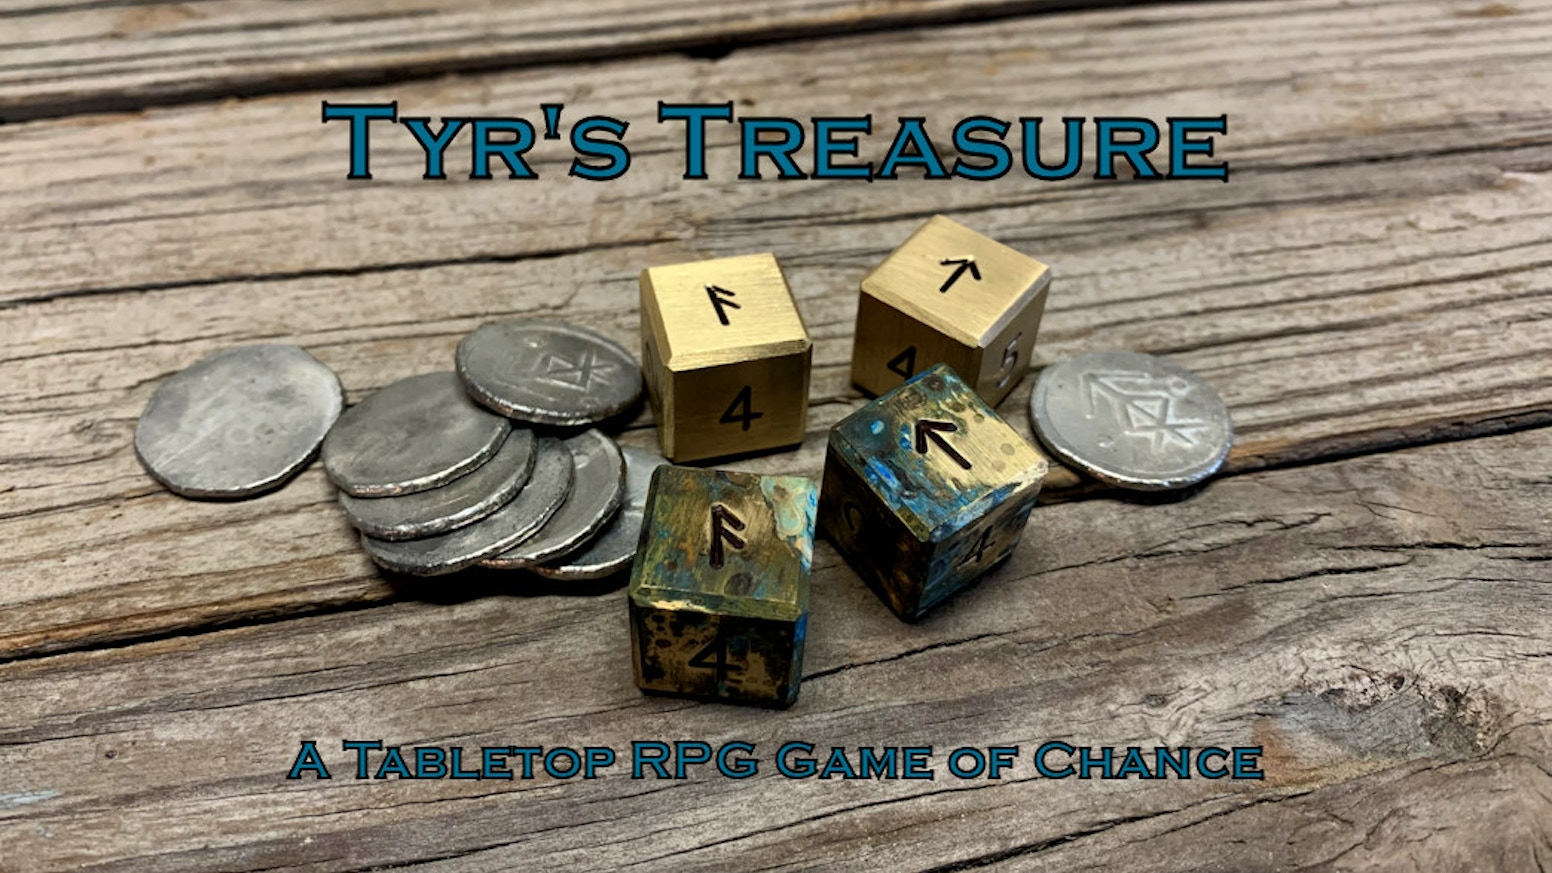 Tyr's Treasure is a fantasy tavern game featuring hand crafted brass dice and pewter treasure coins.